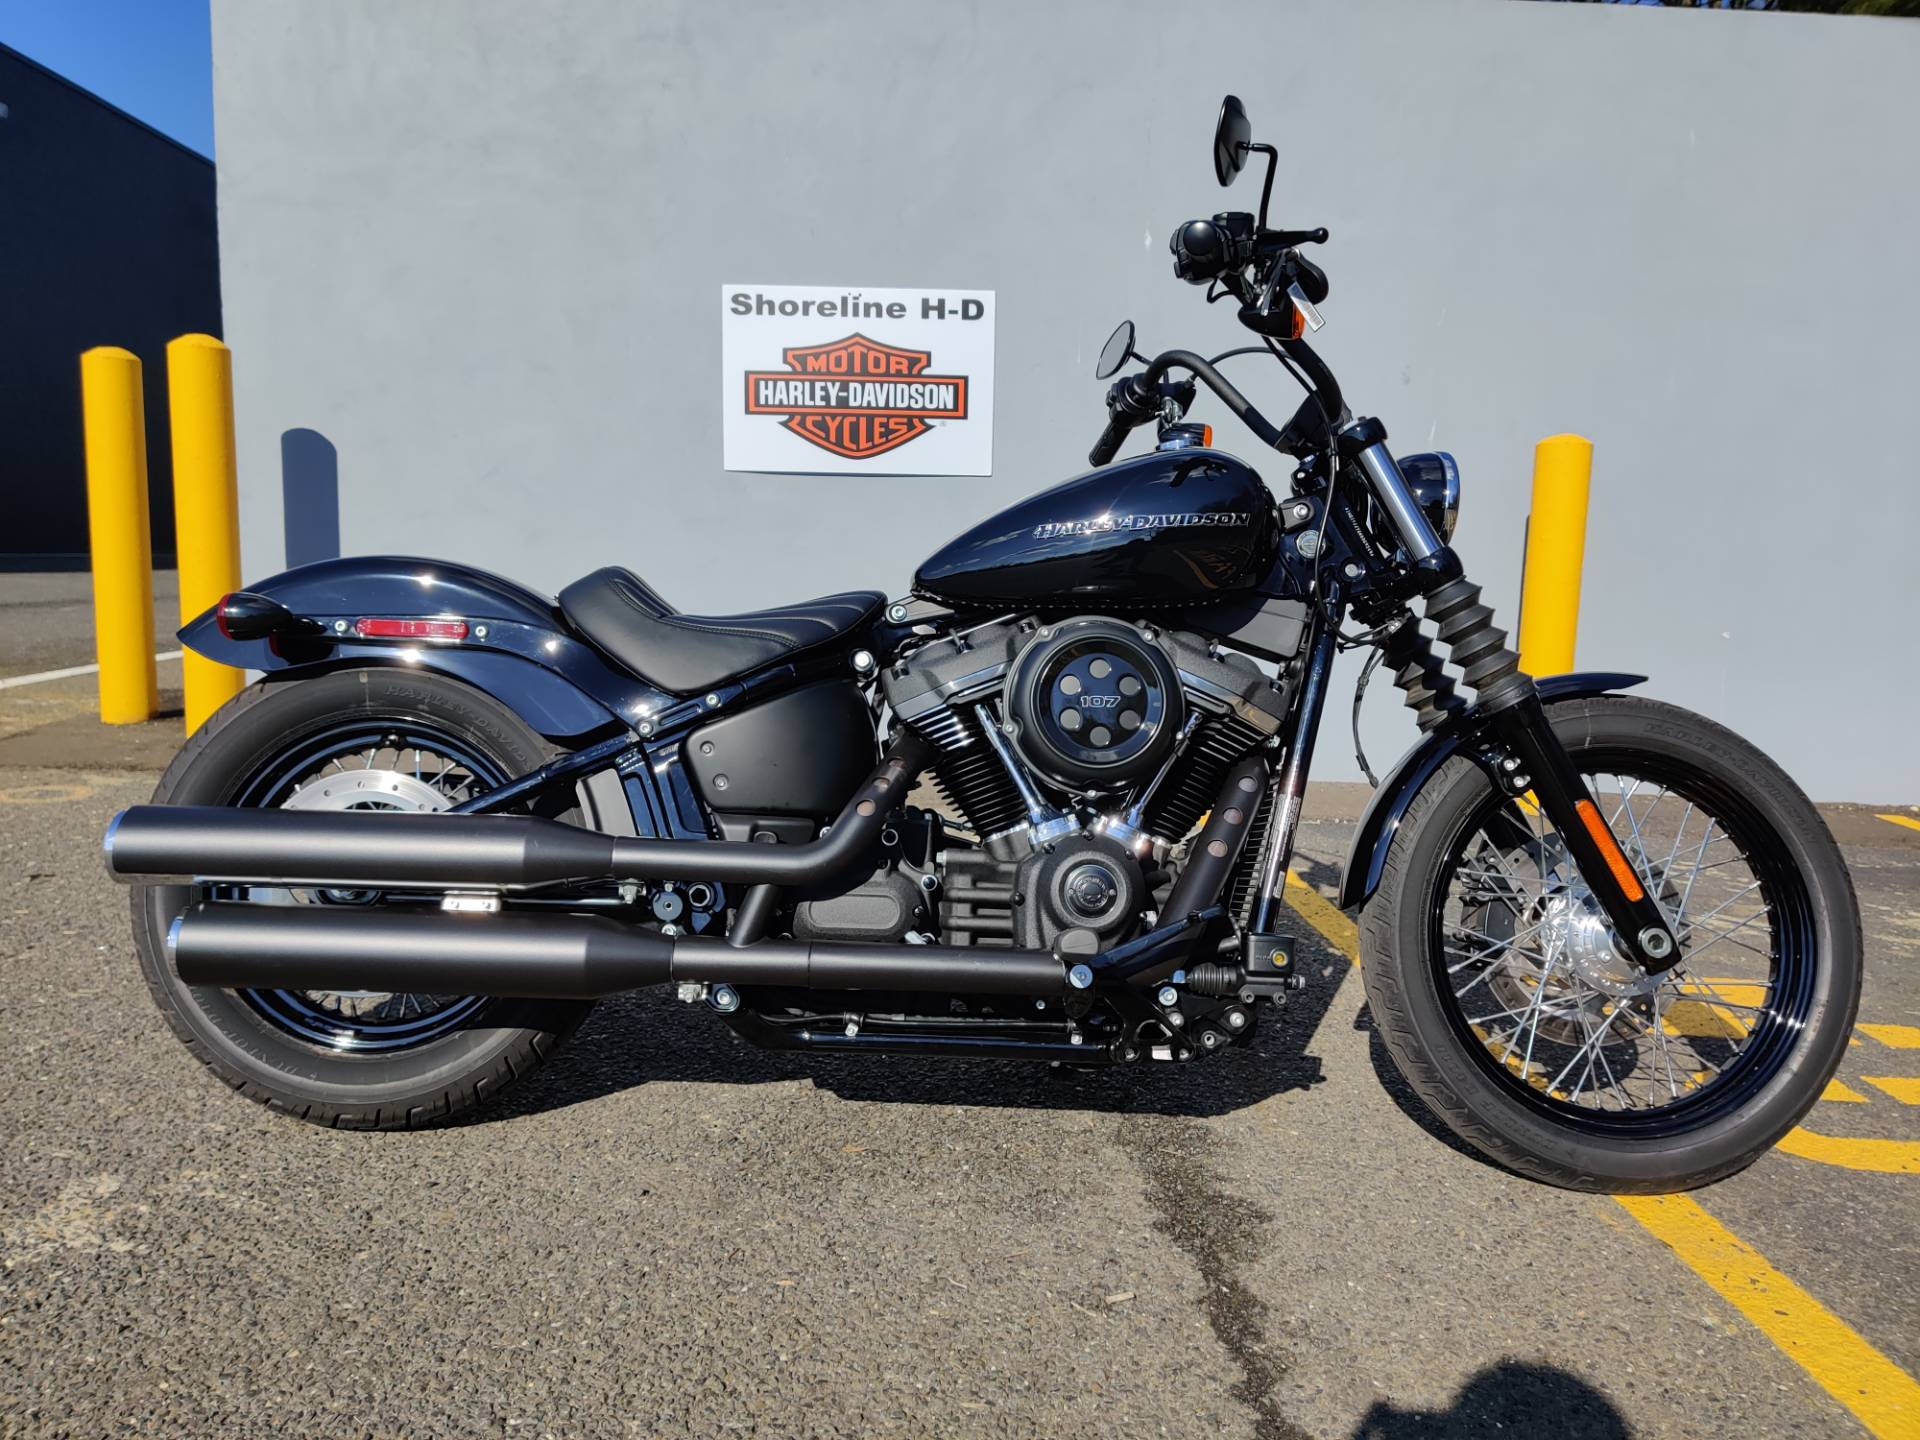 2019 Harley-Davidson Street Bob in West Long Branch, New Jersey - Photo 1